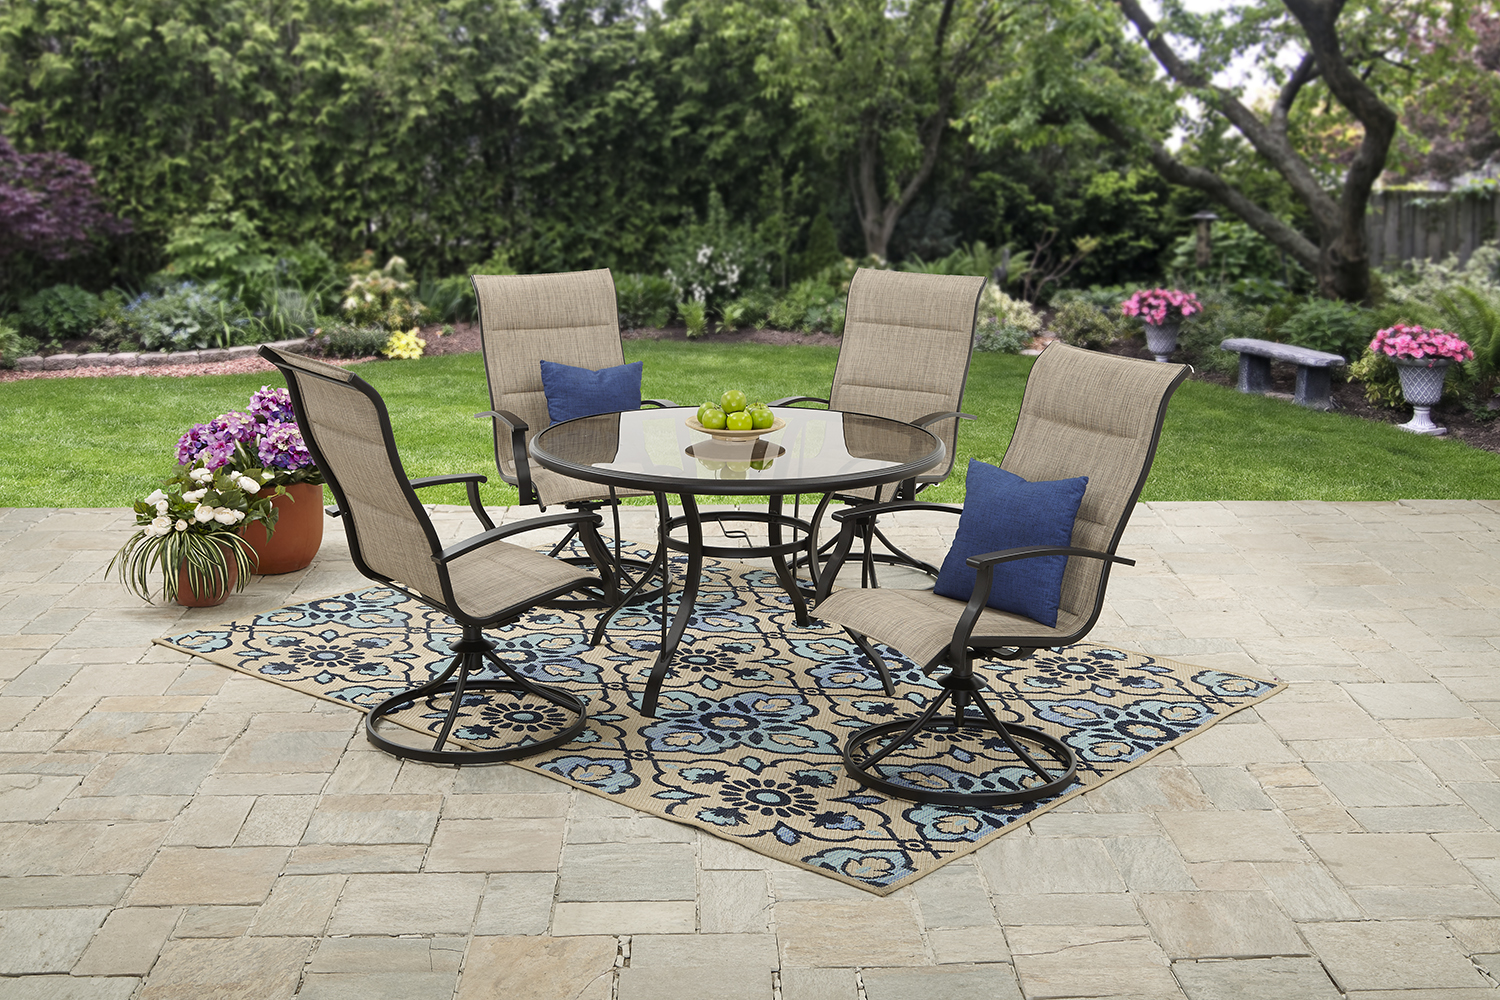 Click here to buy Mainstays Highland Knolls Outdoor Patio Dining Room Set Tan by Courtyard Creations Inc..